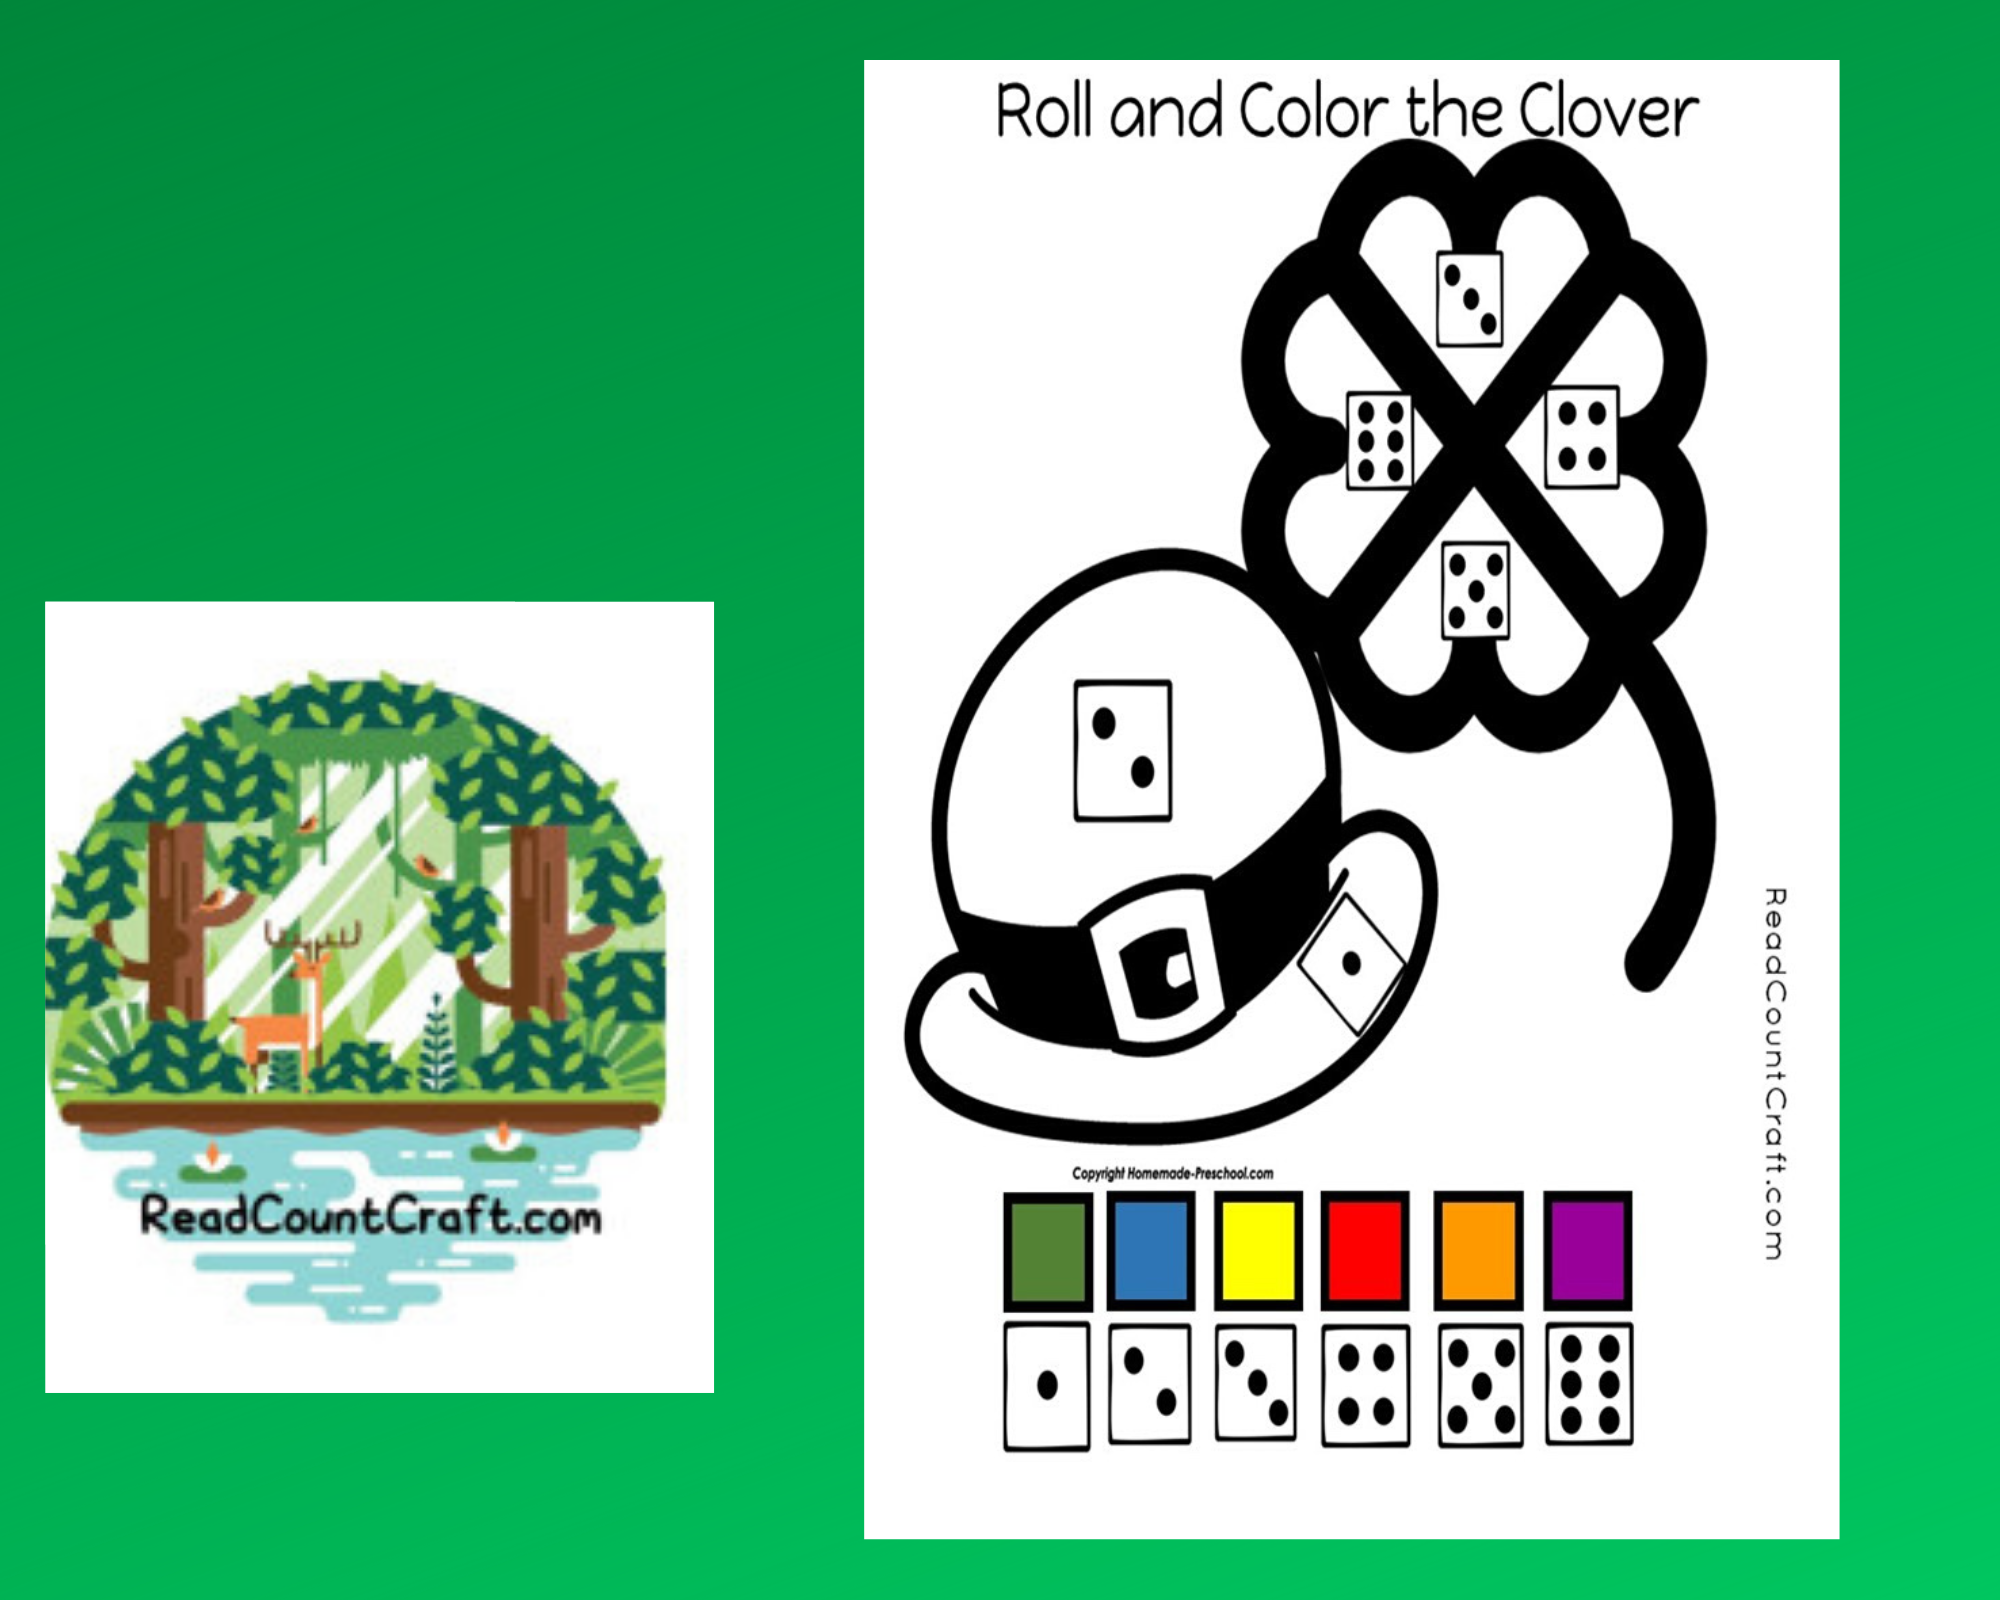 Preschool Dice Game Roll and Color